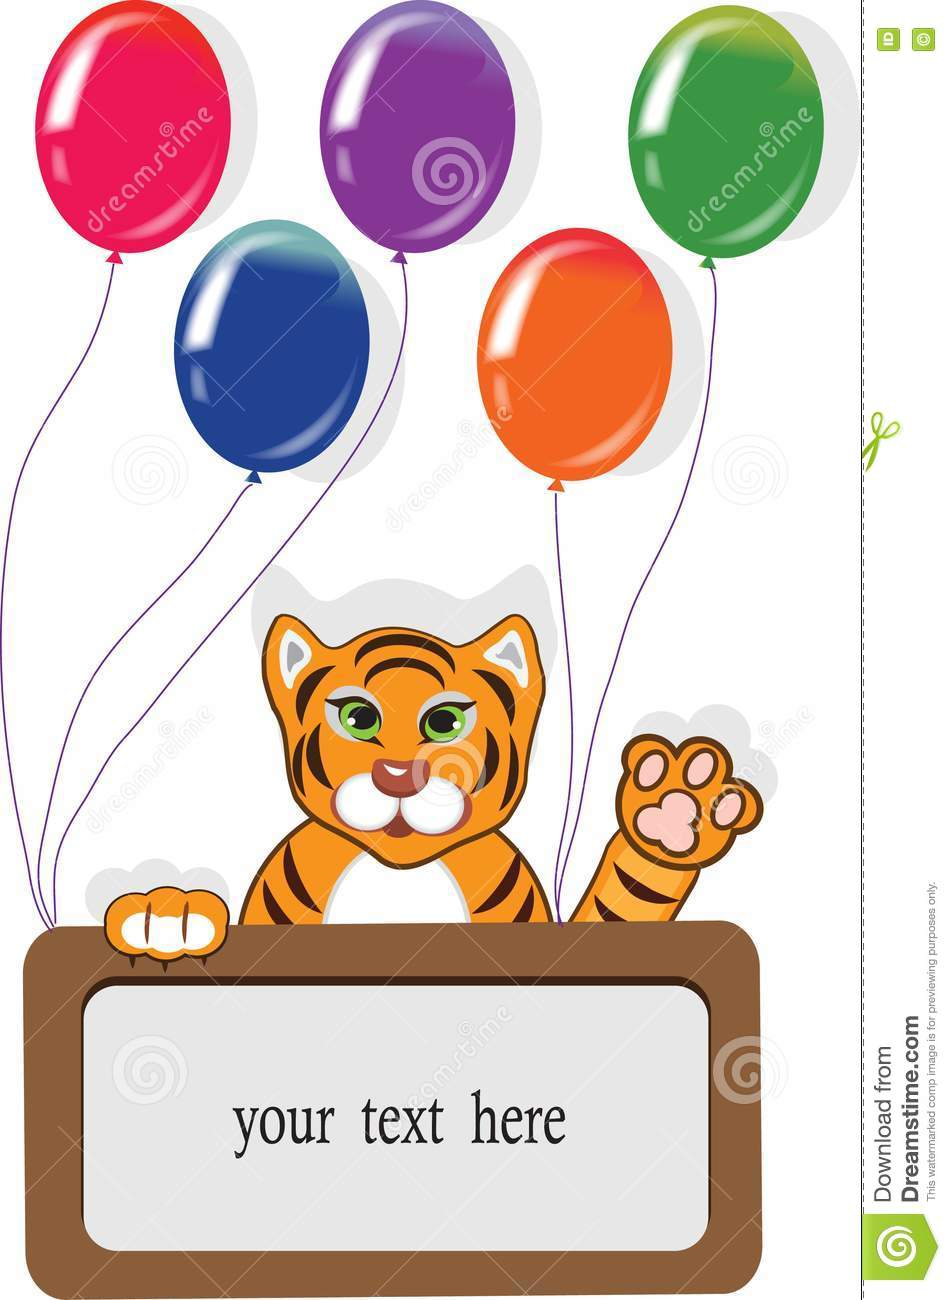 Happy Birthday Card With Funny Tiger And Balloons Royalty